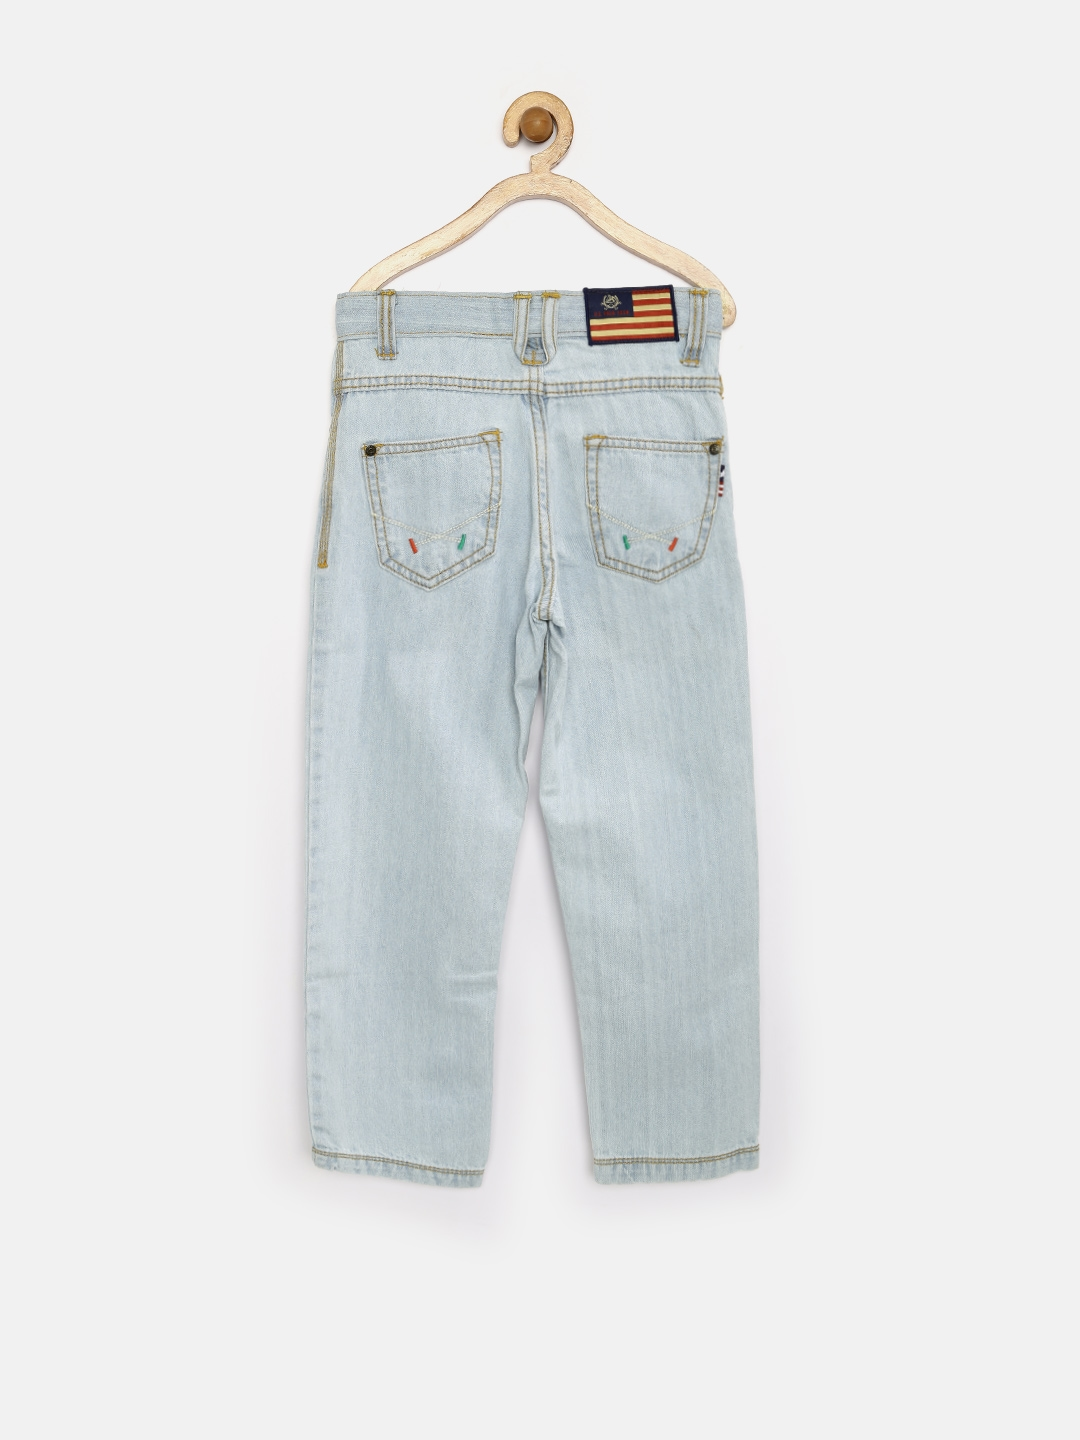 210c57d689 Buy U.S. Polo Assn. Kids Boys Light Blue Washed Jeans - Jeans for ...